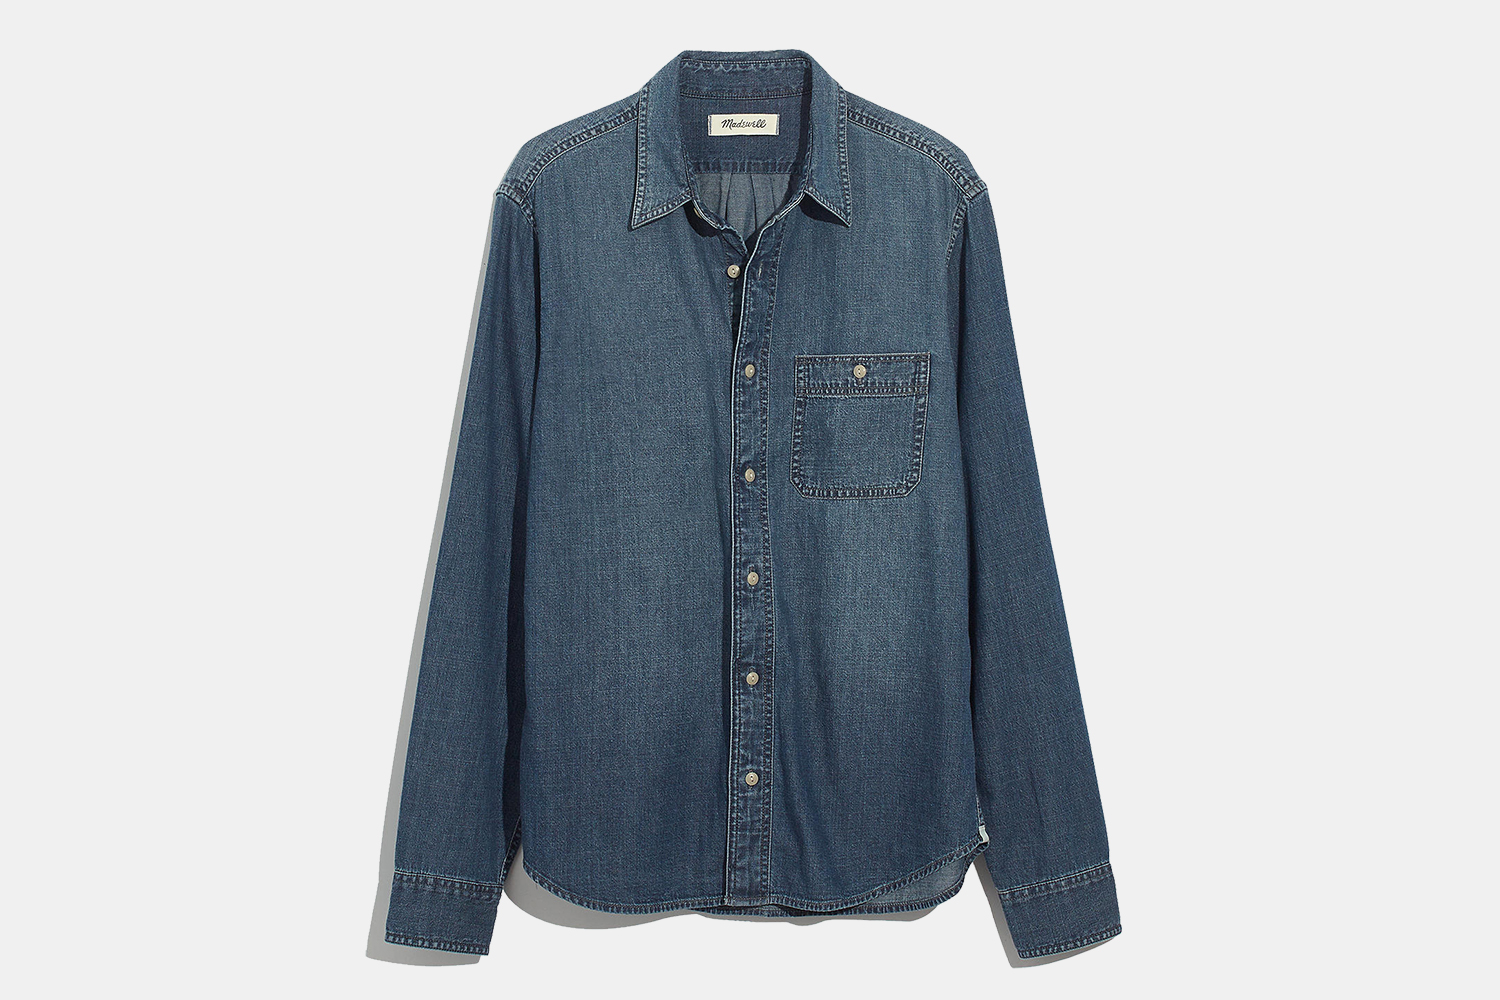 Madewell Men Denim Button-Down Shirt in Newhall Wash